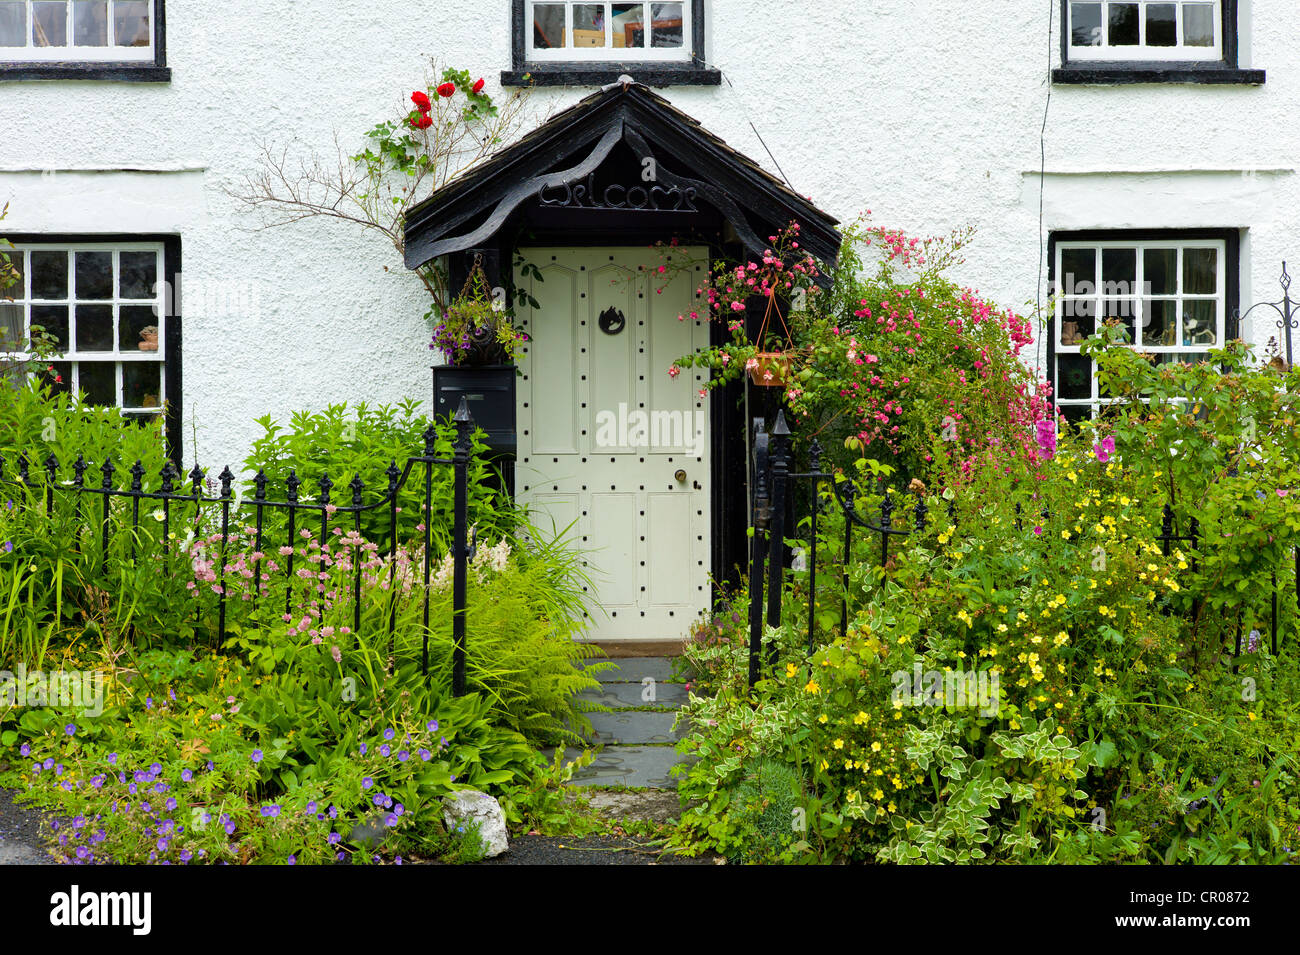 Quaint lakeland cottage with studded front door and Welcome sign, at Troutbeck in the Lake District National Park, - Stock Image